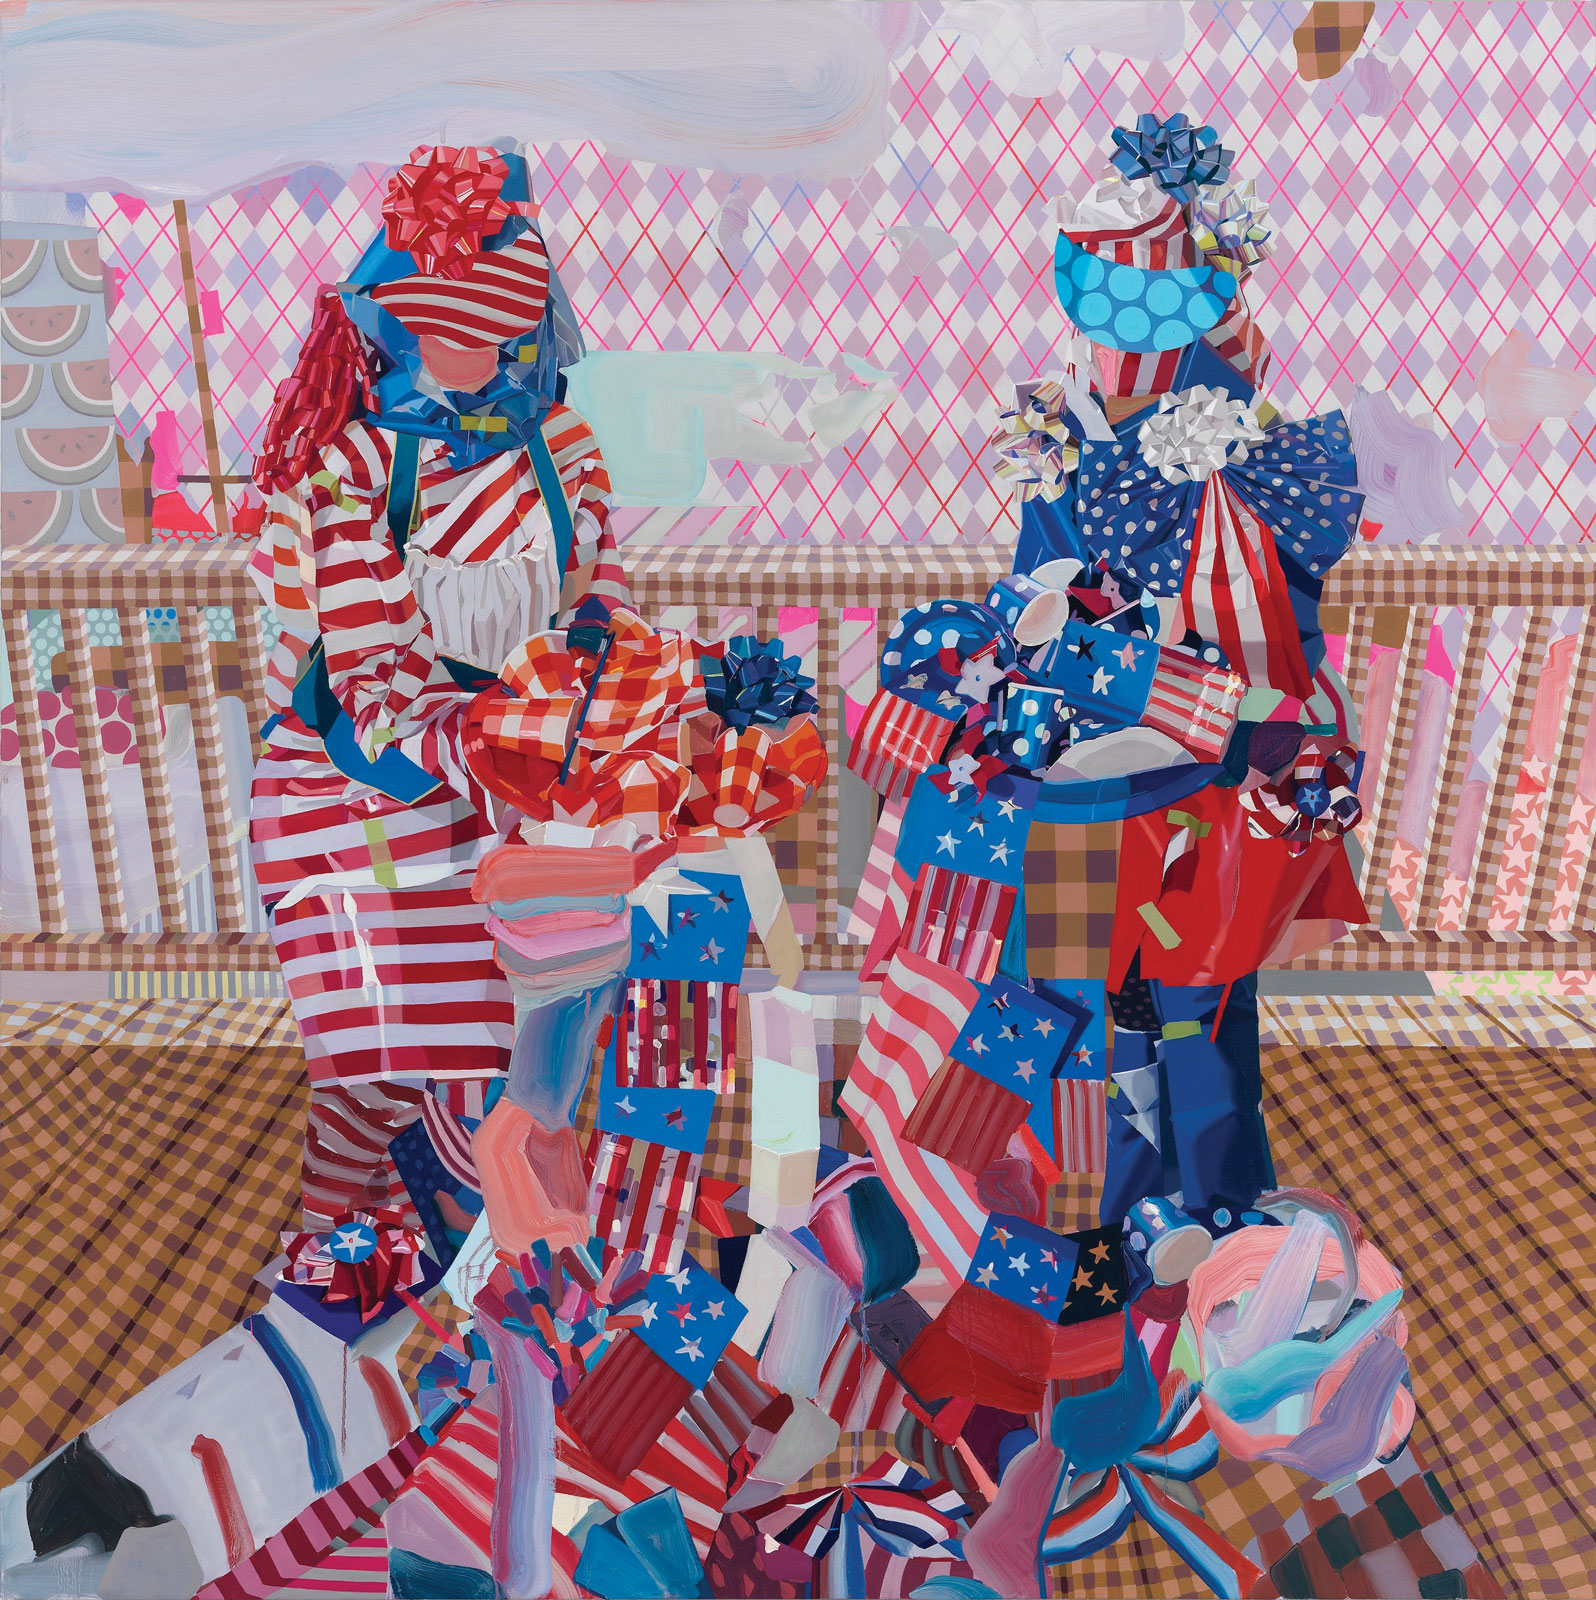 <i>Pie Contest</i> (2012), 66˝ × 66˝, oil and curling ribbon on canvas